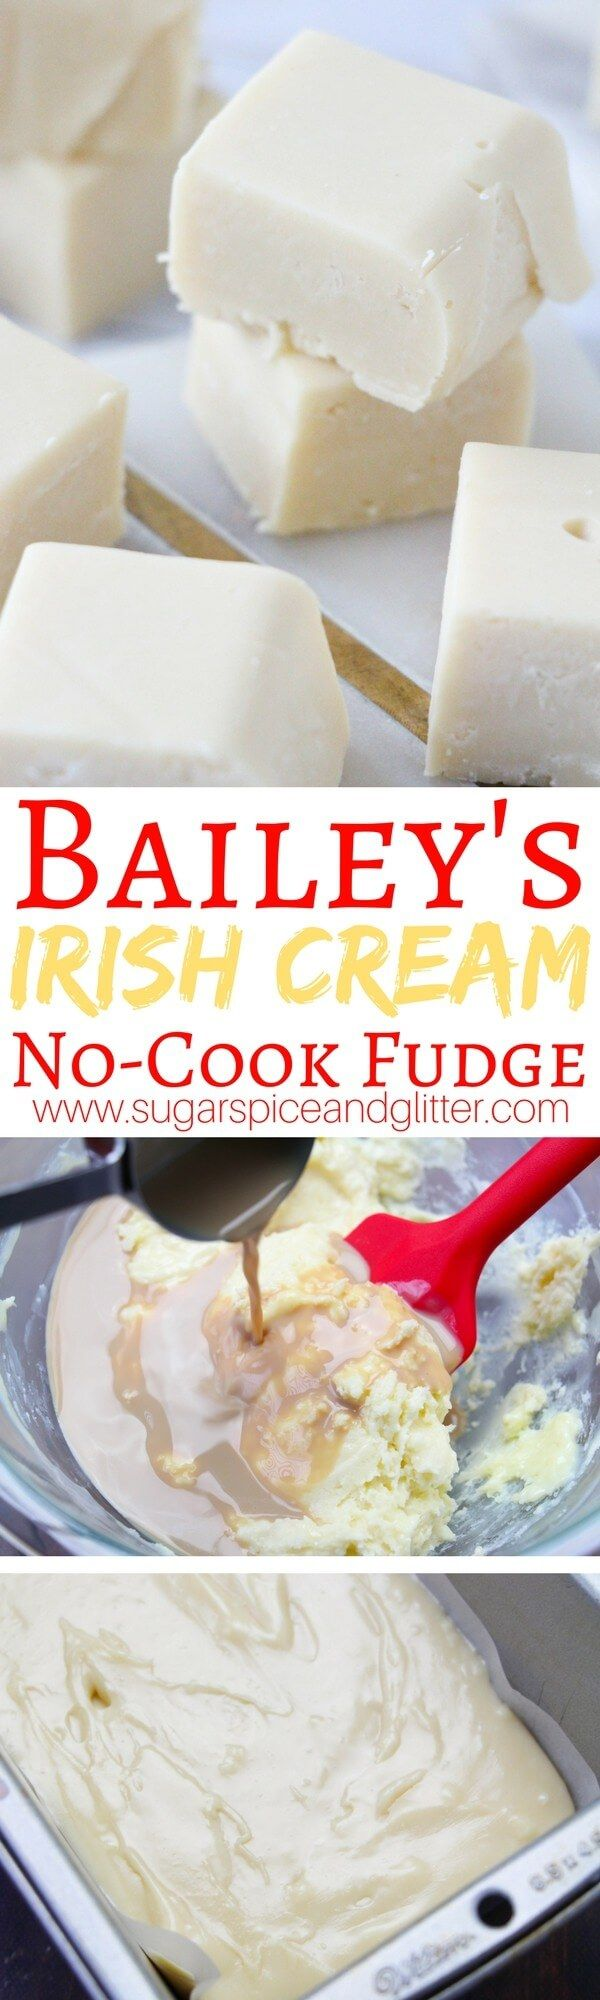 A creamy and delicious no-cook fudge made with Bailey's Irish Cream. A delicious homemade gift for Christmas or St Patrick's day treat just for grown-ups